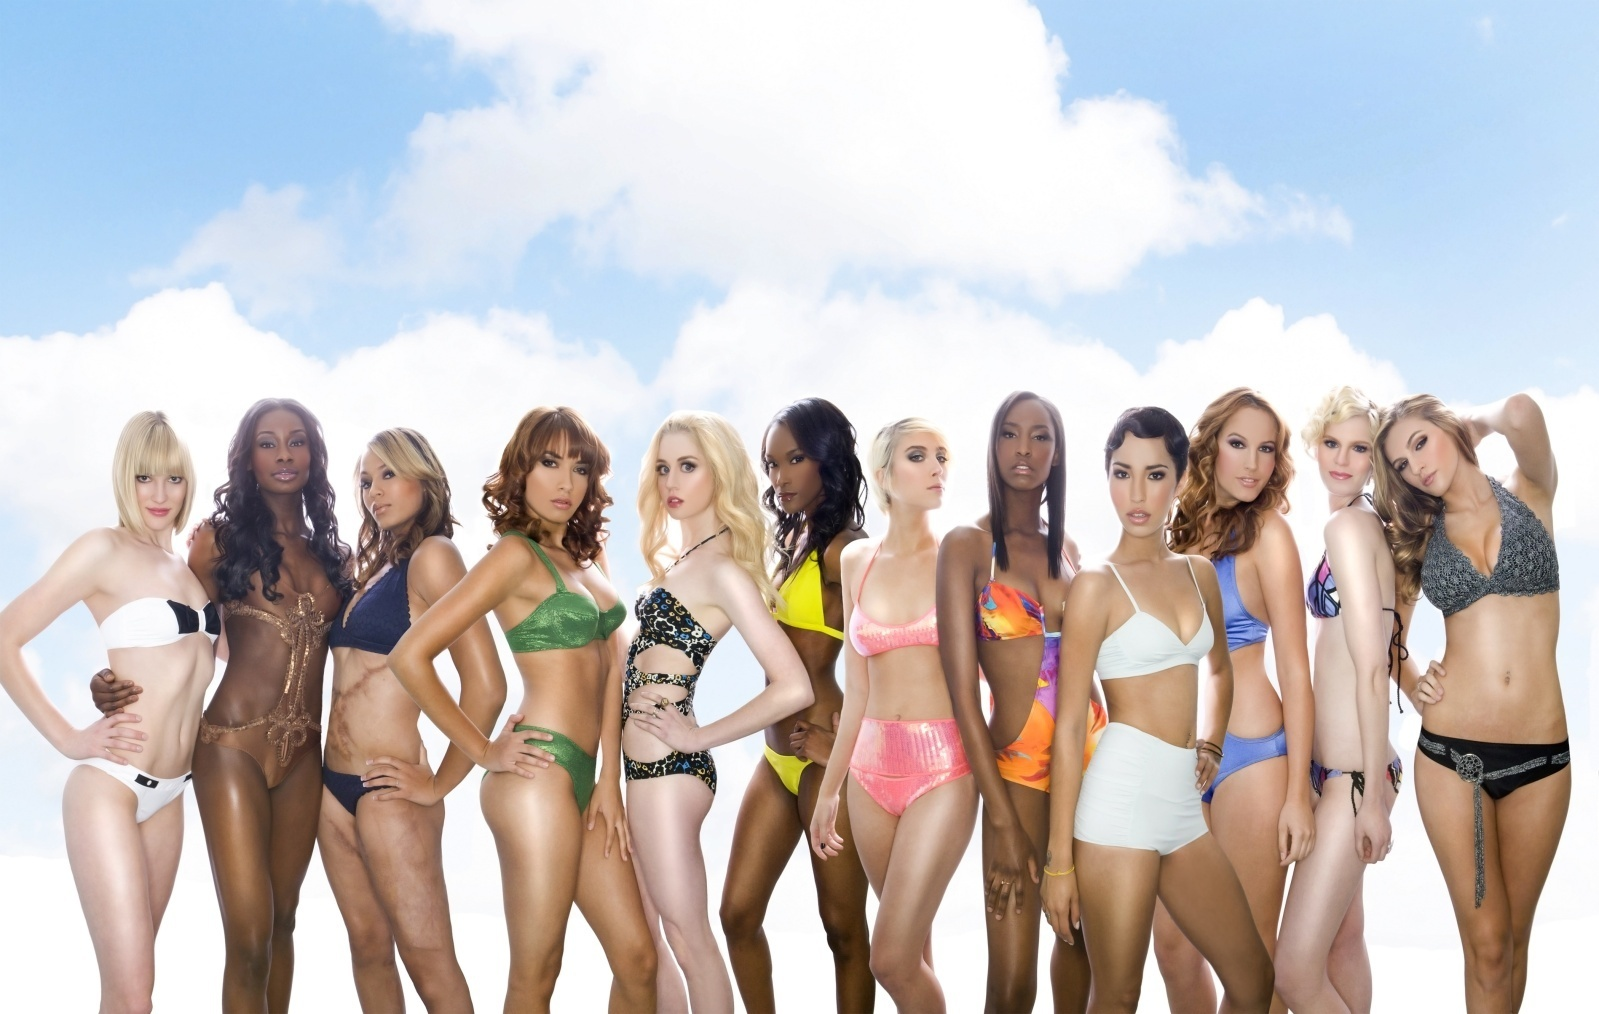 America's Next Top Model Cycle 12